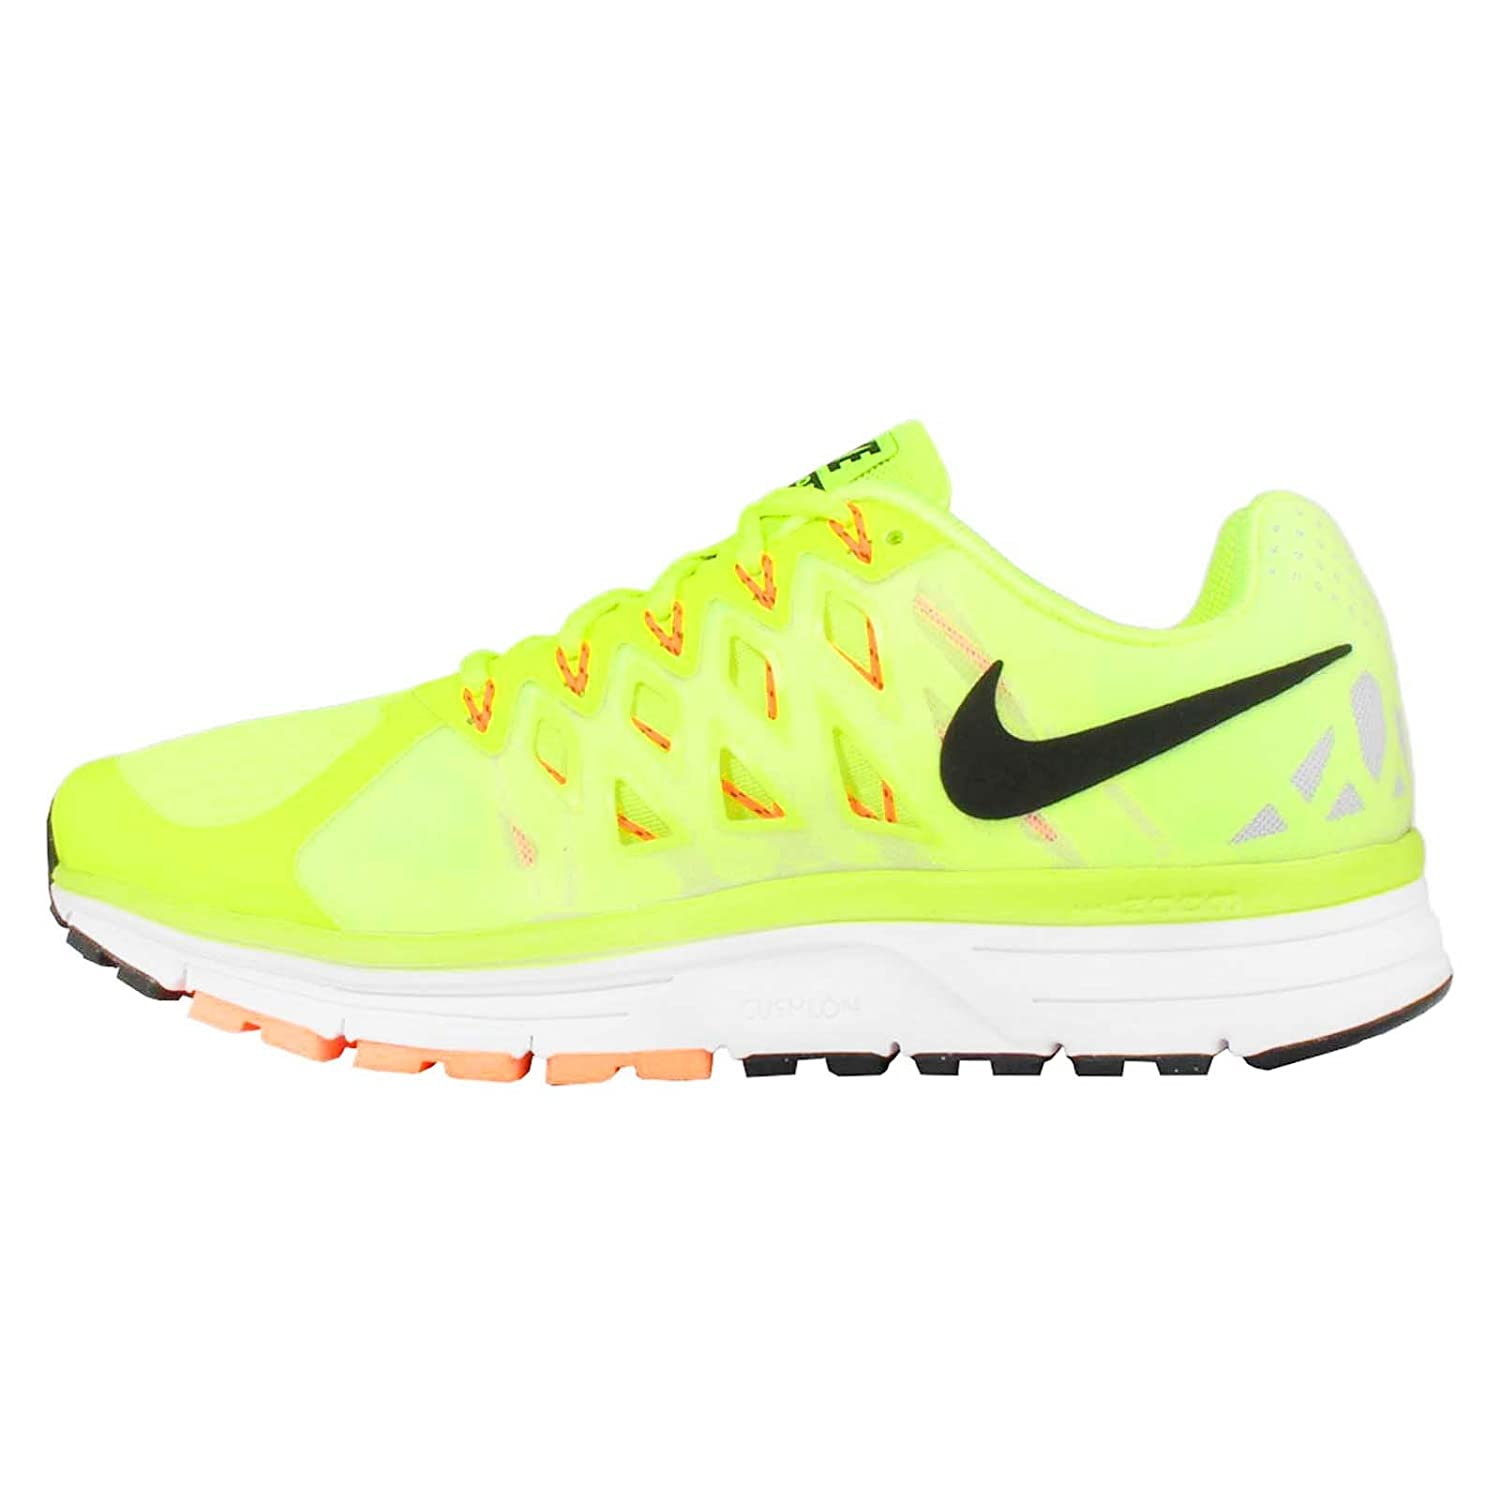 03f3da2d739f Nike Men s Zoom Vomero 9 Running Shoes